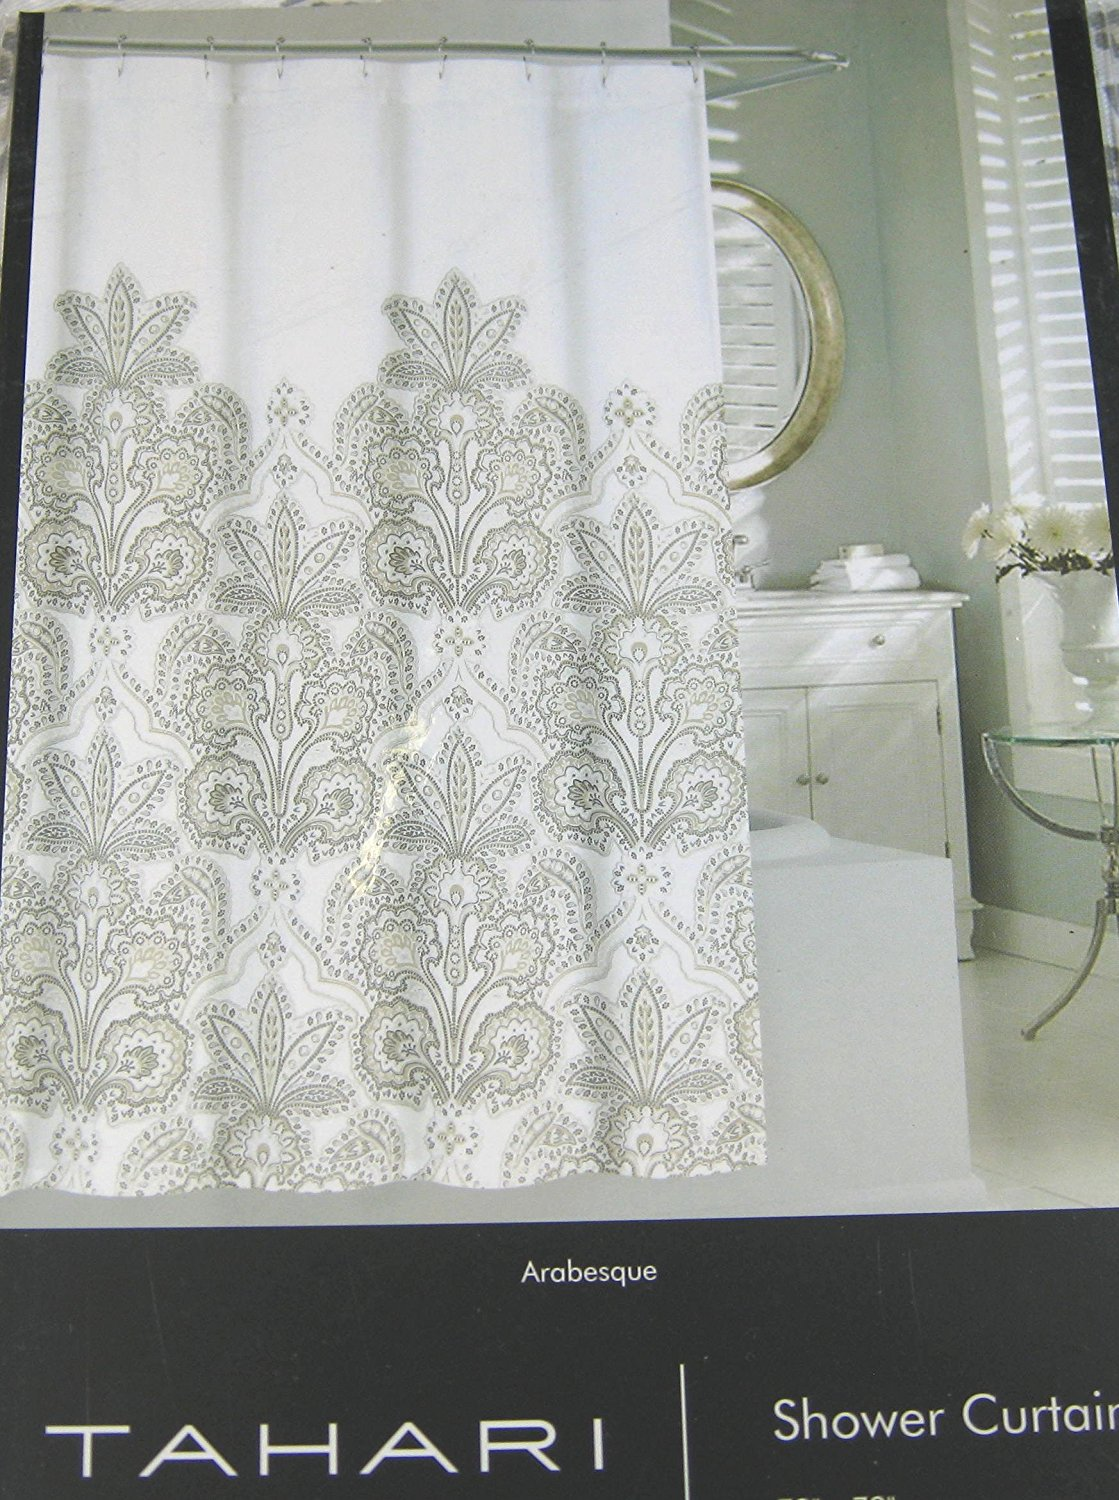 "Tahari Home Paisley Floral Shower Curtain Arabesque Lt. Taupe,Gray on White 72"" x &2"""